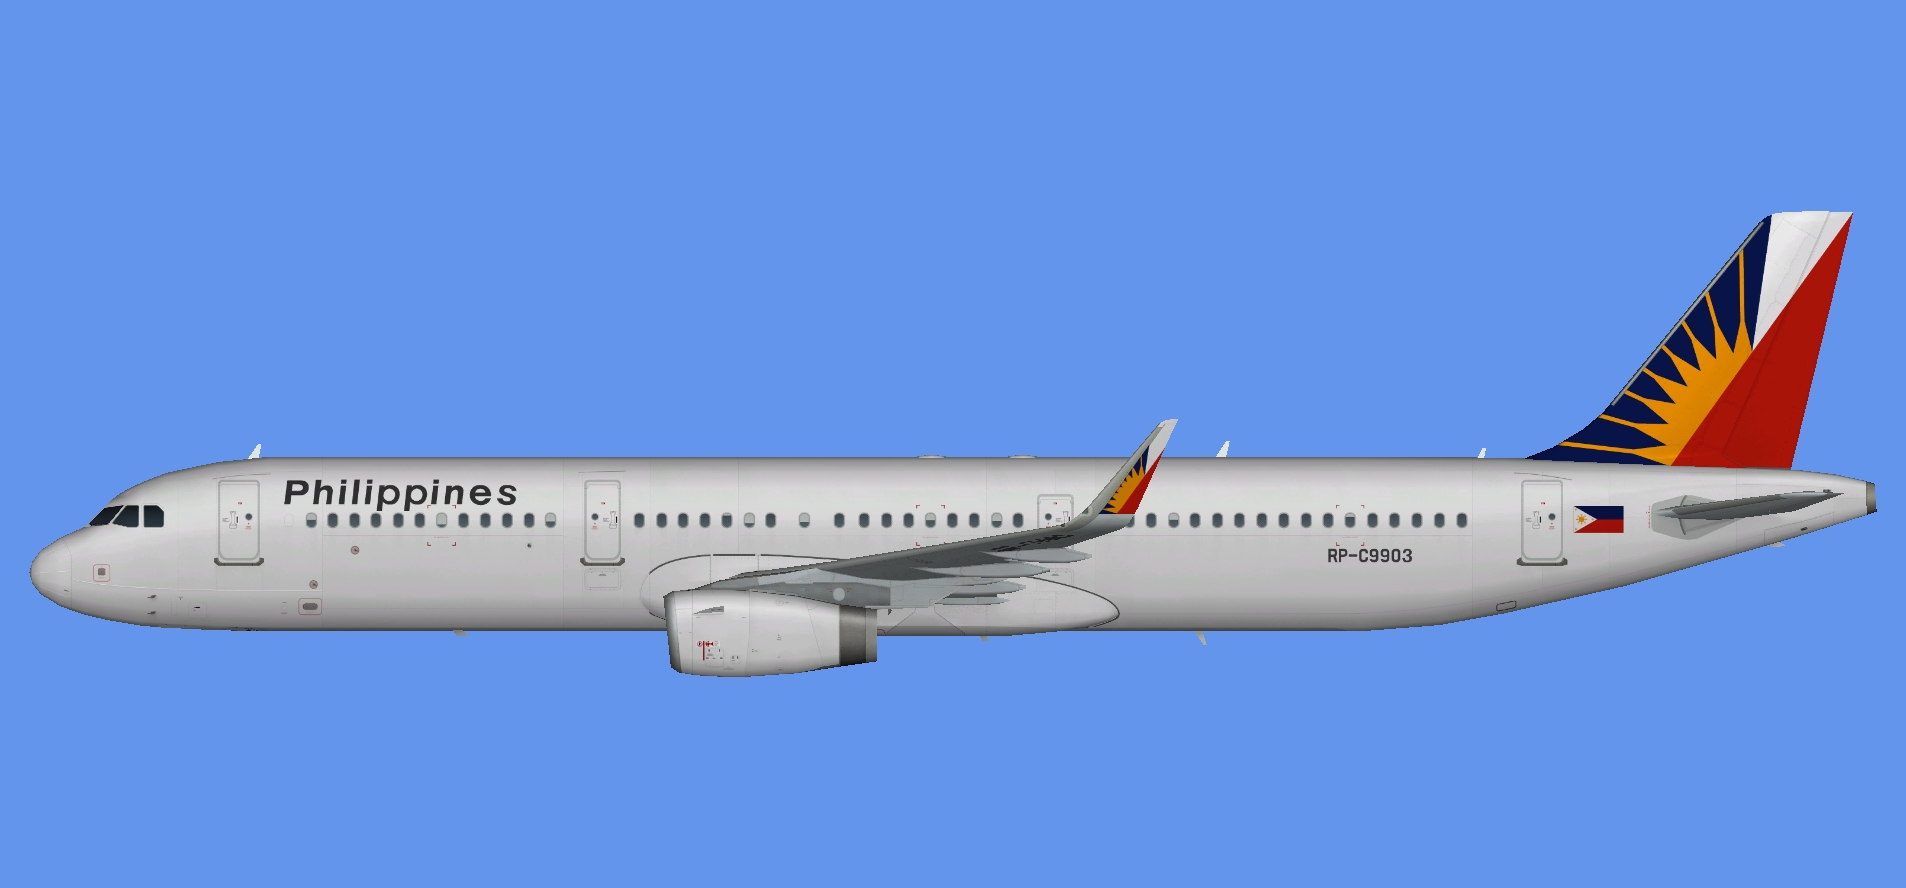 Philippine Airlines A321 sharklets